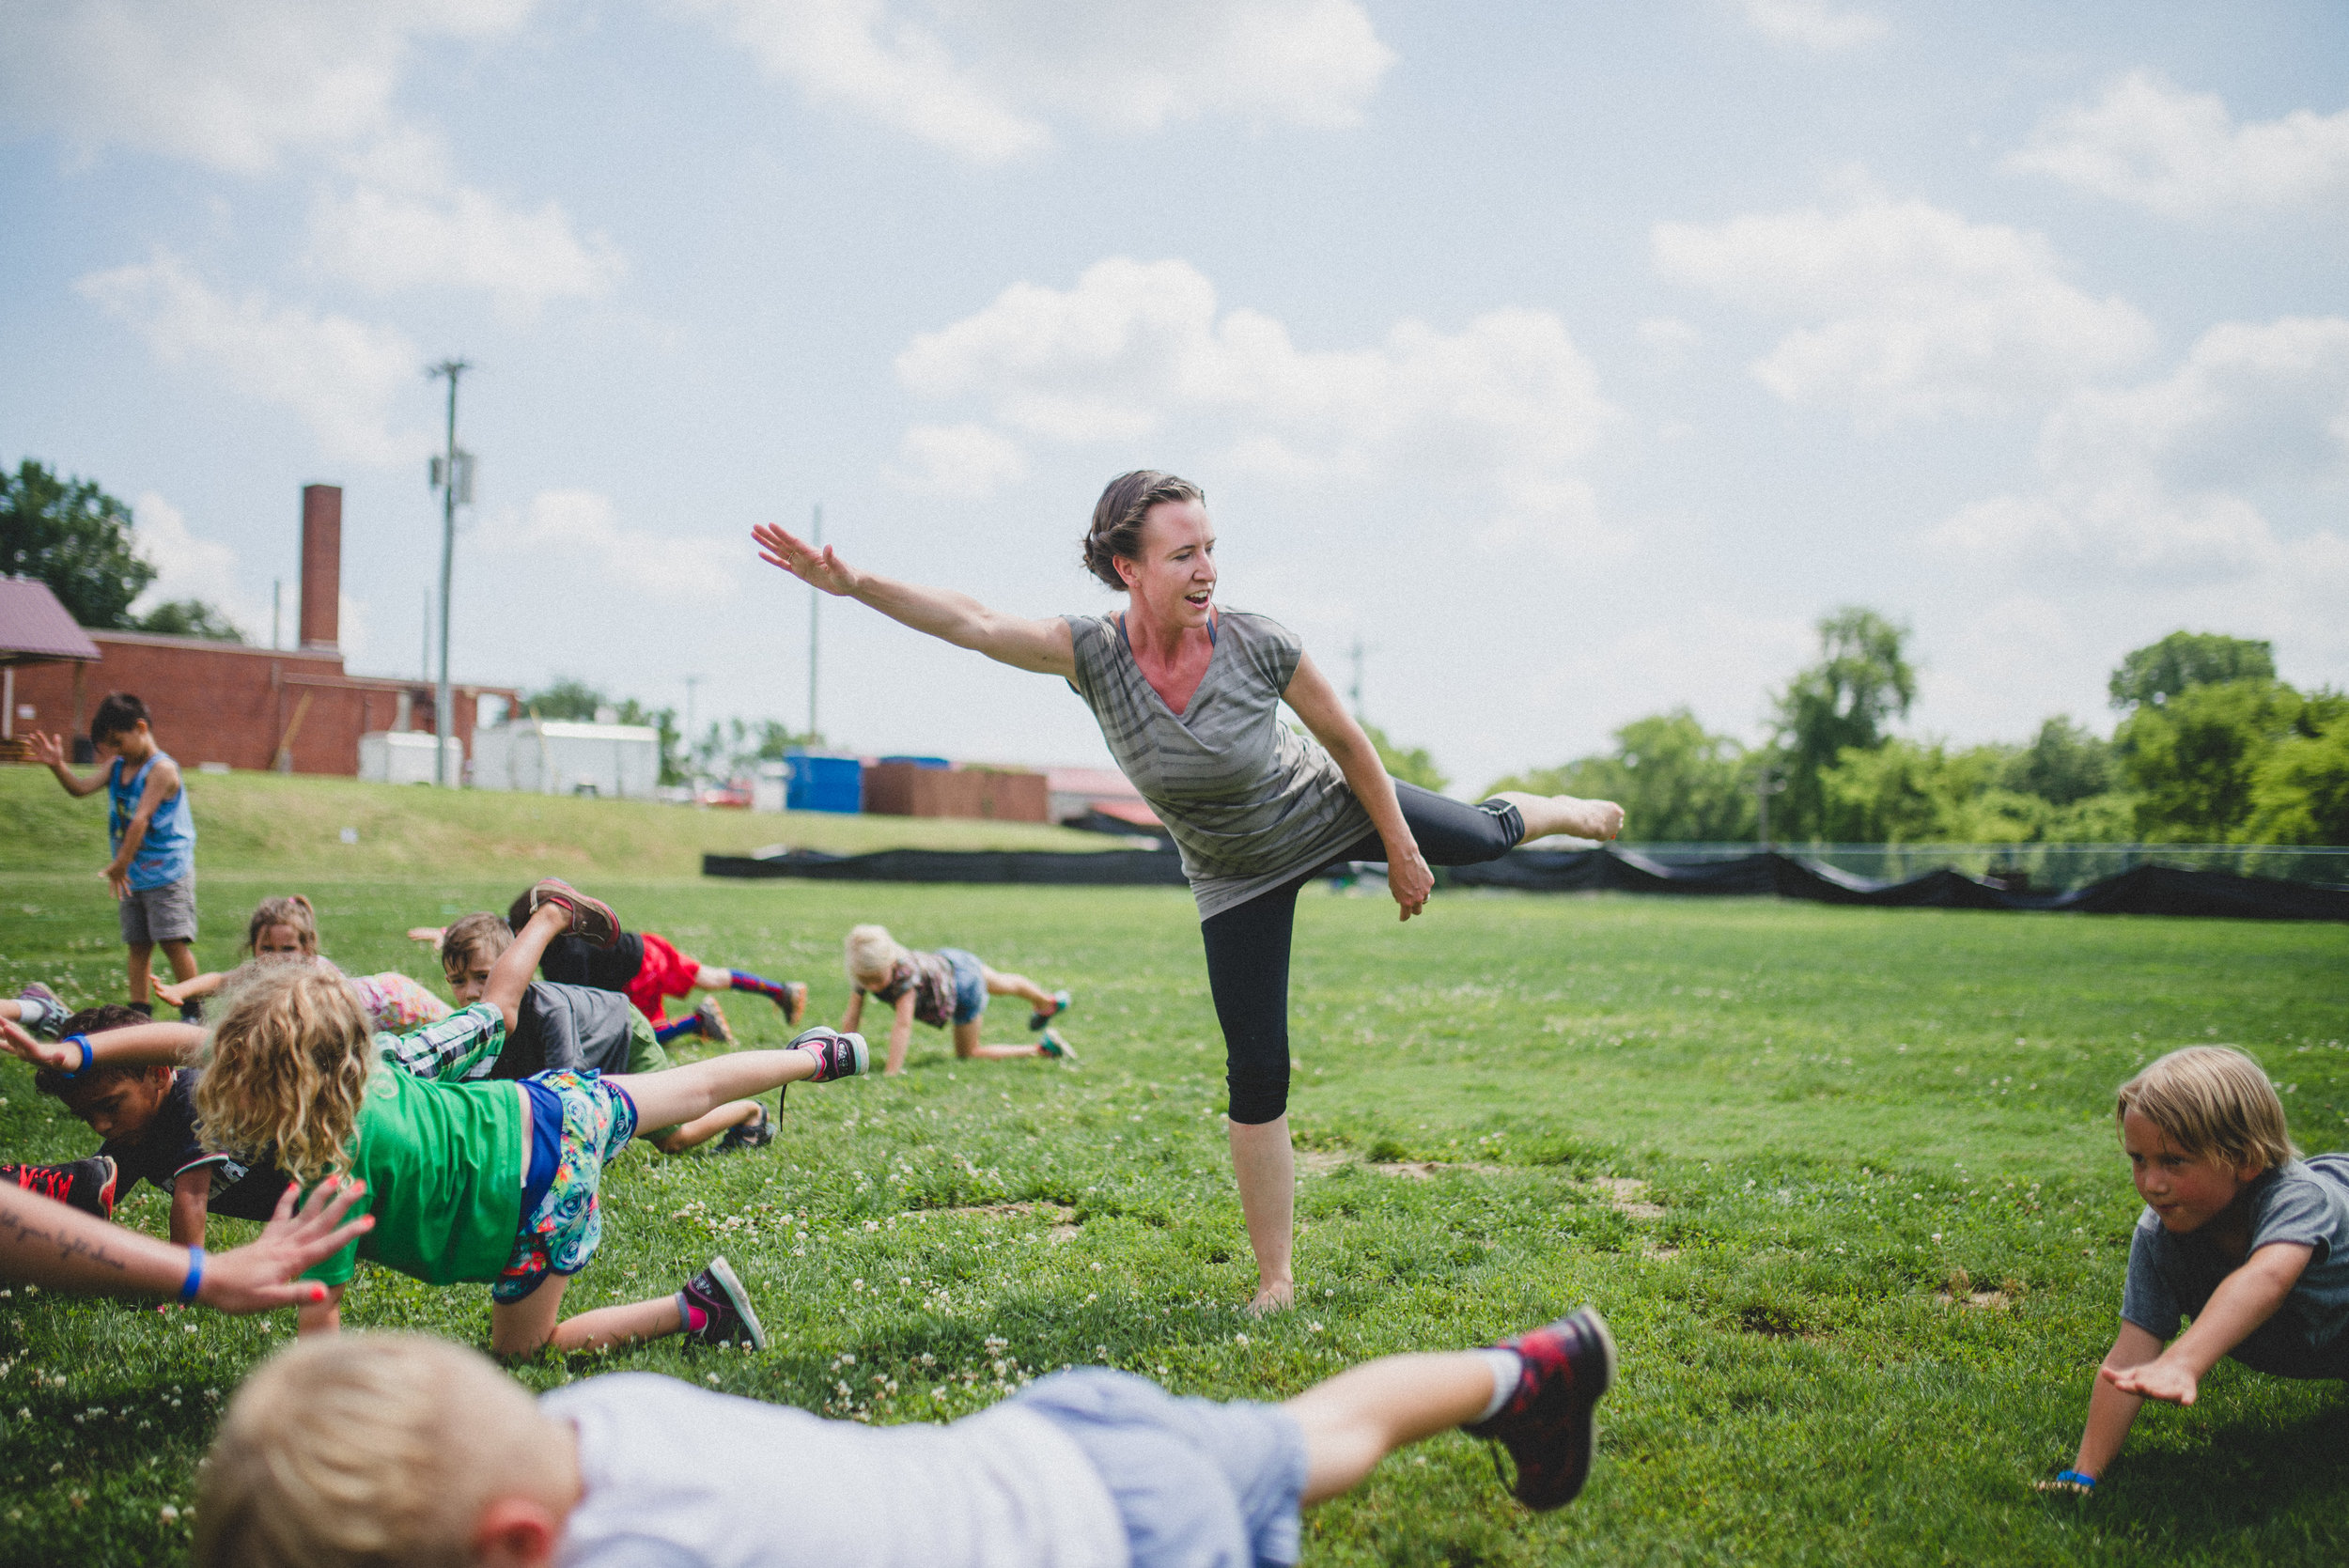 """Sarah Corniea, certified Yoga instructor said of her time with campers, """"Yoga poses a challenge to the campers as it requires mental focus to get their body to move into stretches and balancing poses. It is a joy to see campers come out of their comfort zones and learn how to focus in the moment and become aware of how their bodies move!"""""""